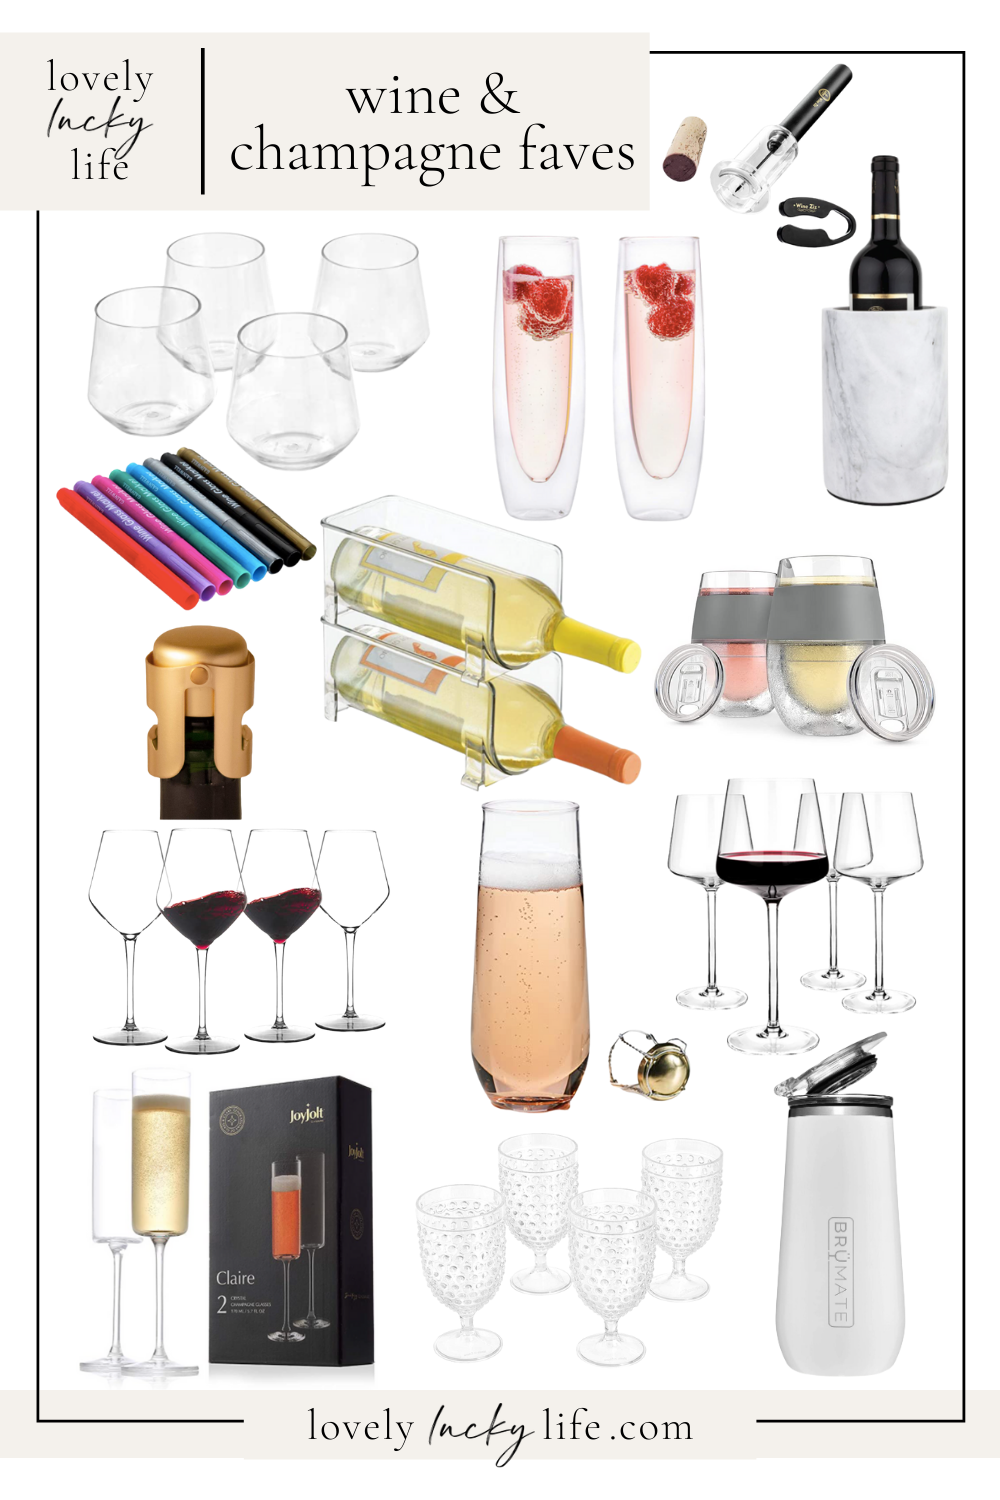 Wine and Champagne Faves on LovelyLuckyLife.com